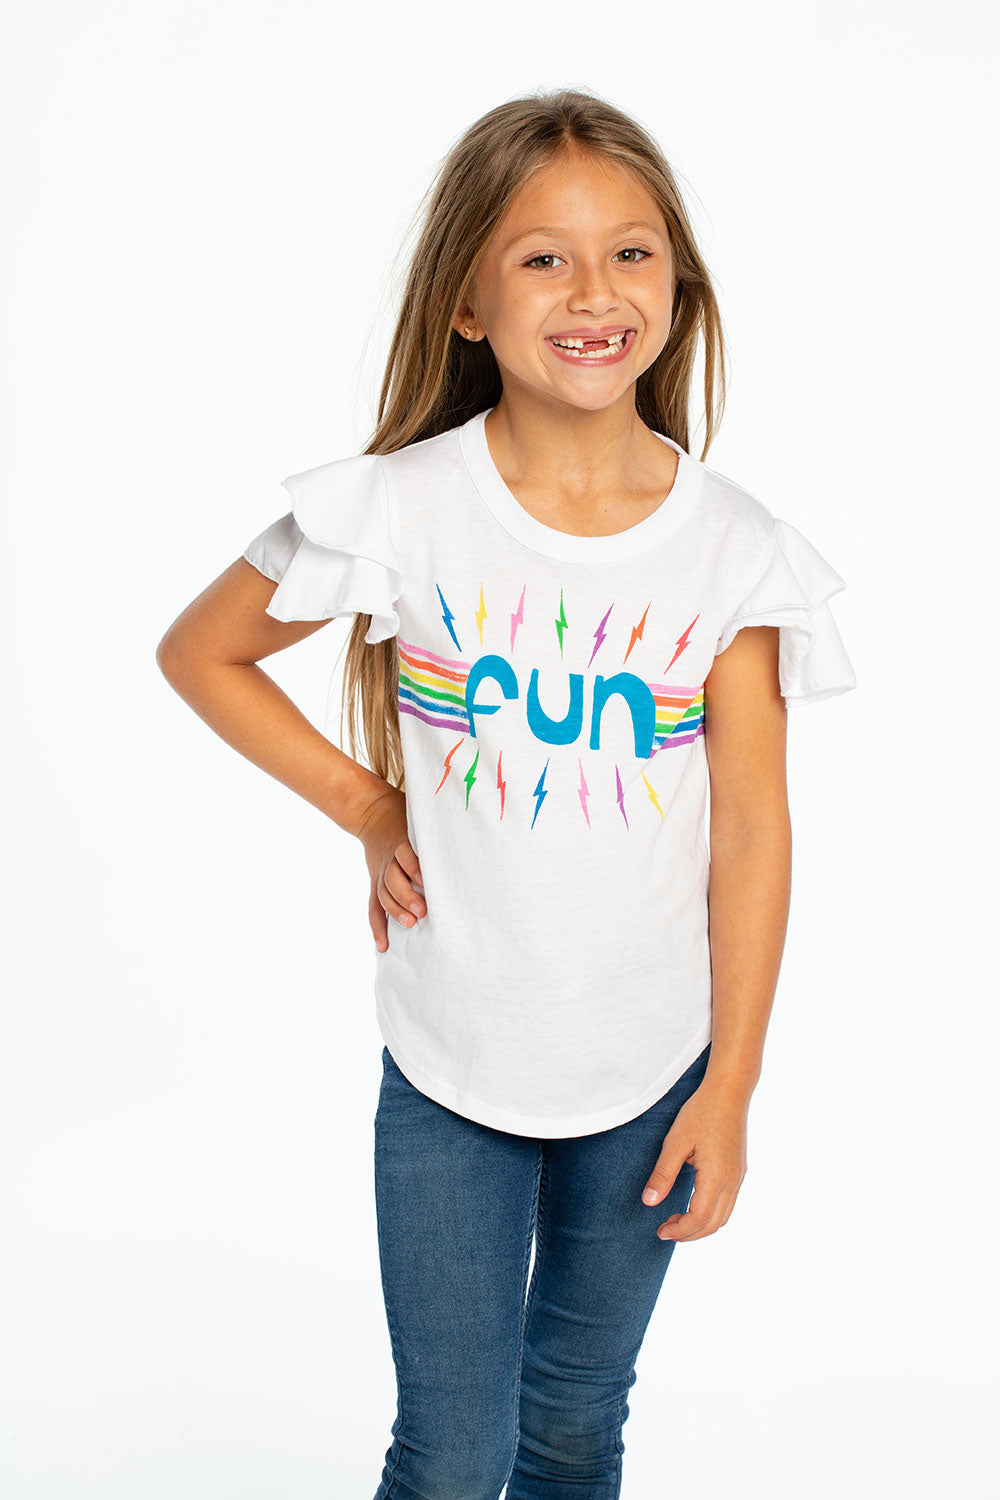 Rainbow Fun GIRLS chaserbrand4.myshopify.com